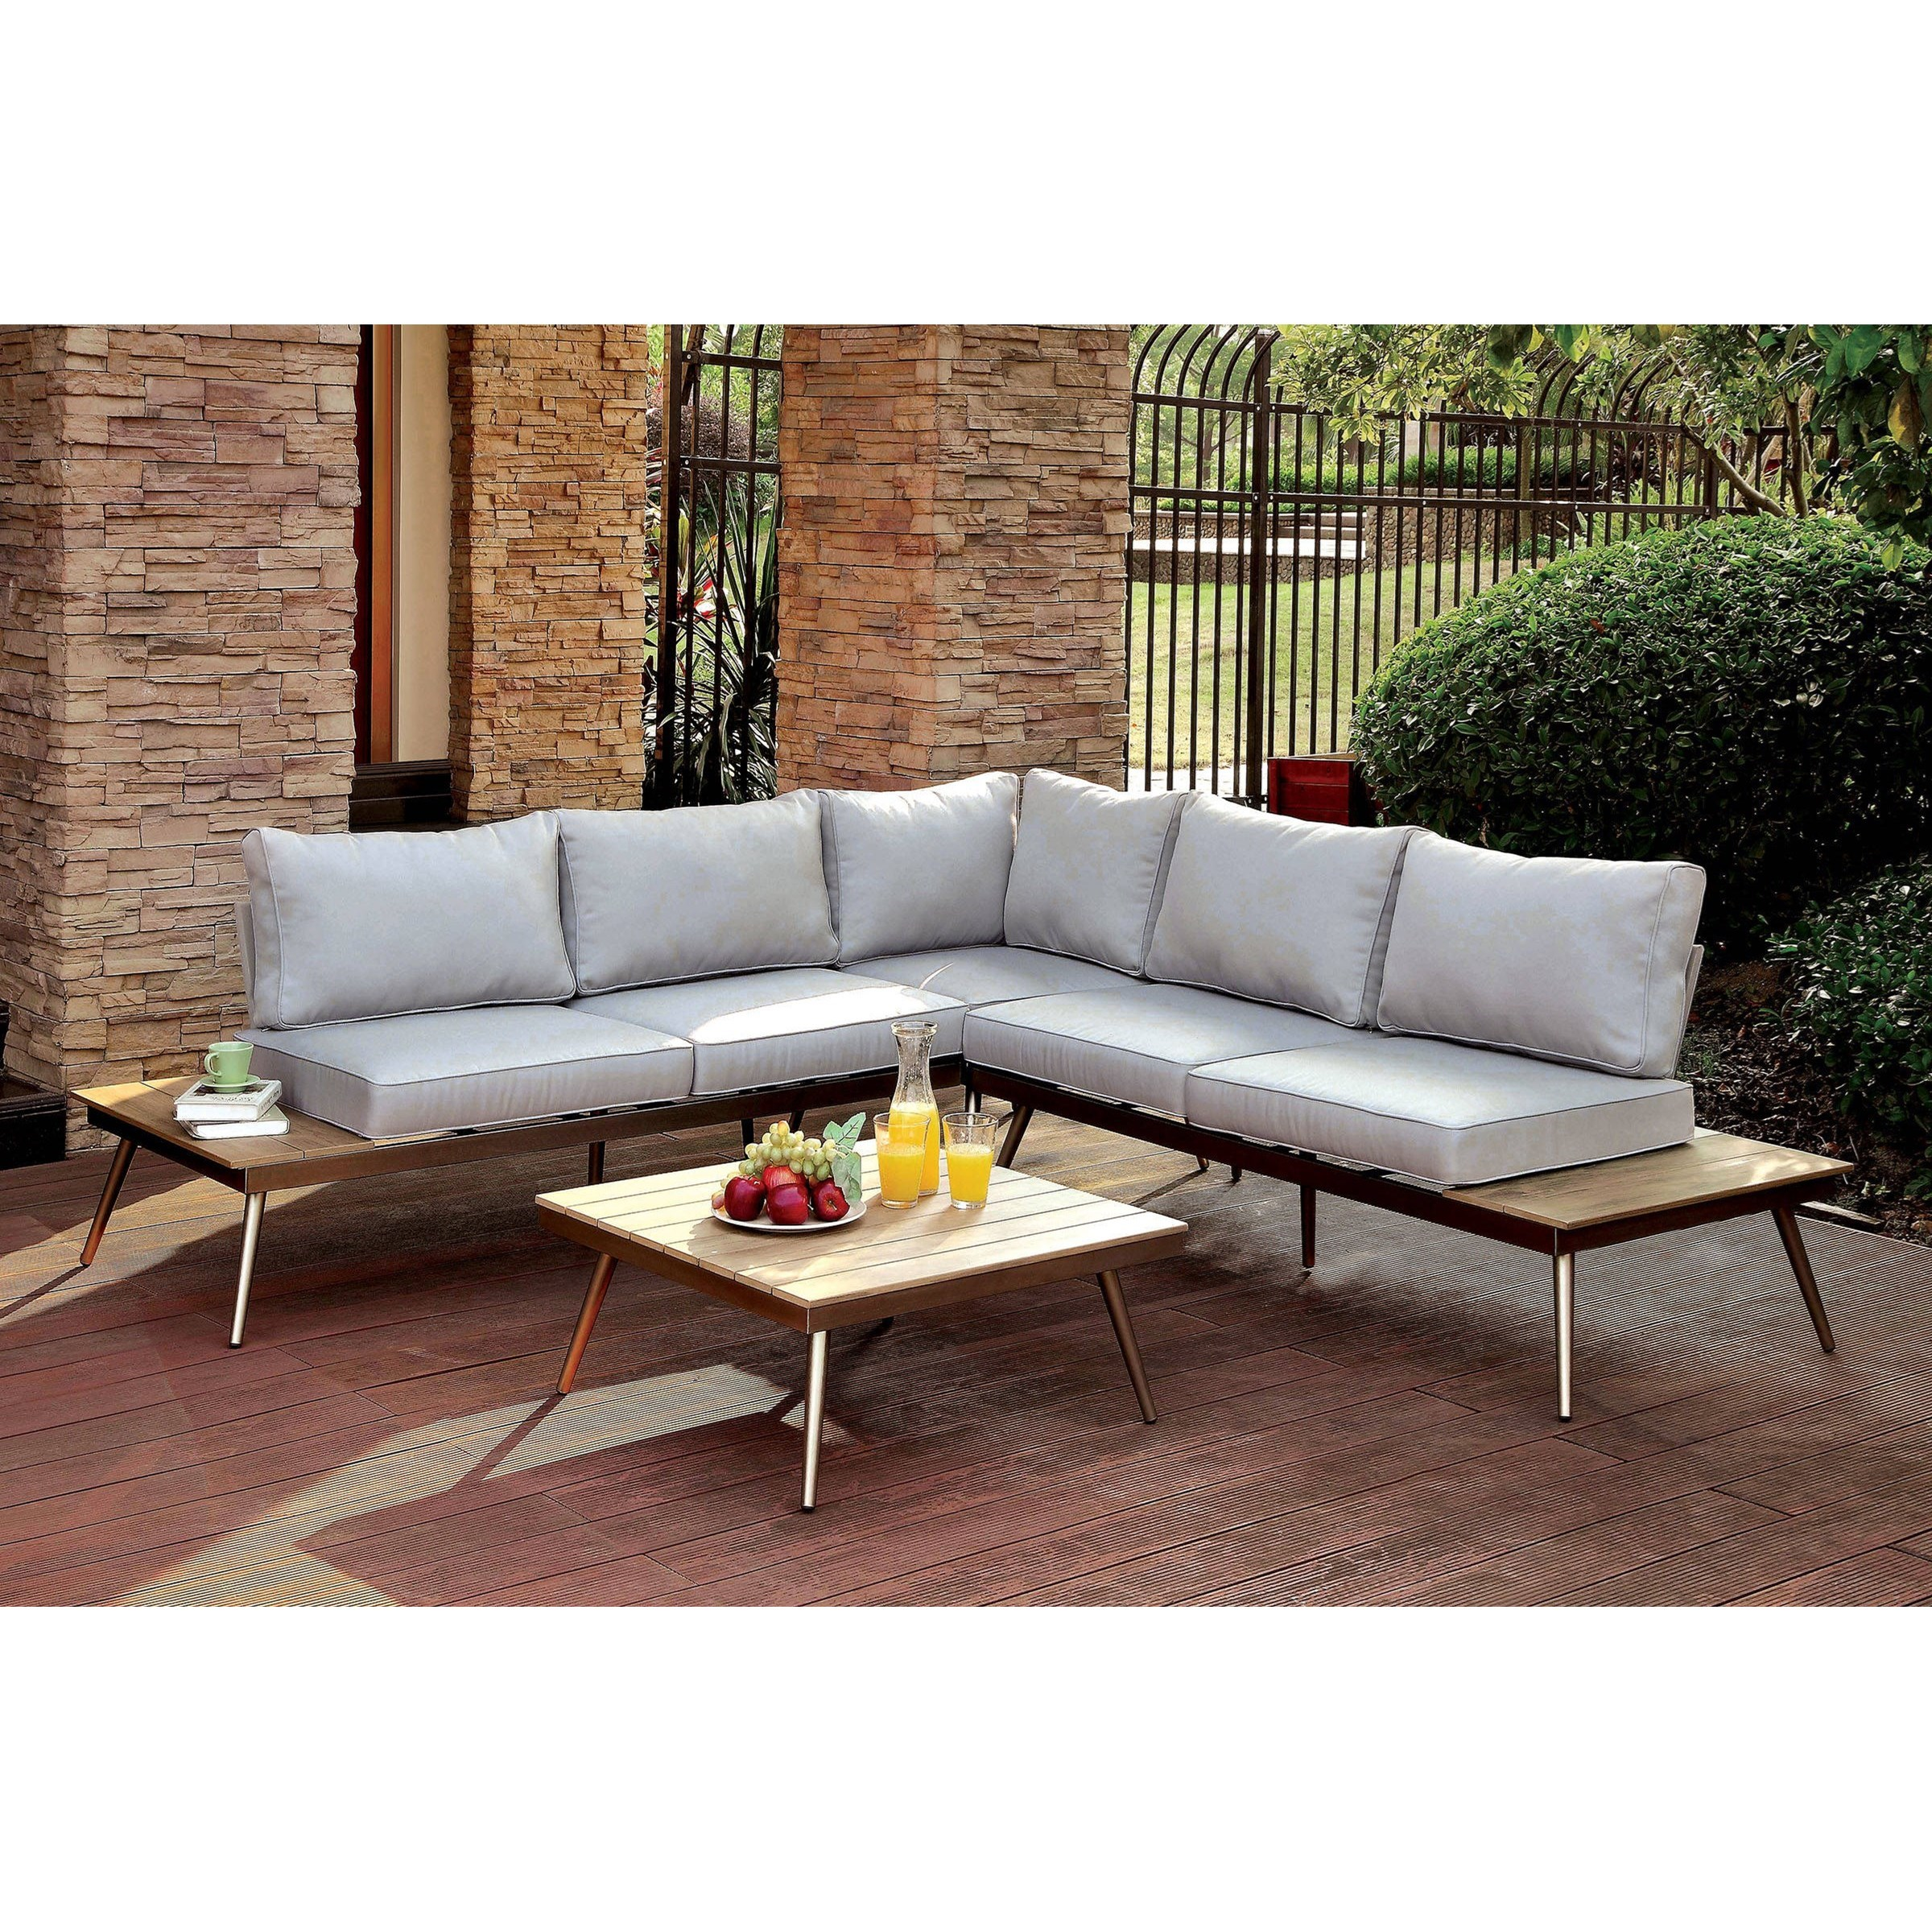 Sofa Olx Jsr Evita 3 Piece Mid Century Modern Patio Sectional Sofa With Built In End Tables By America At Del Sol Furniture